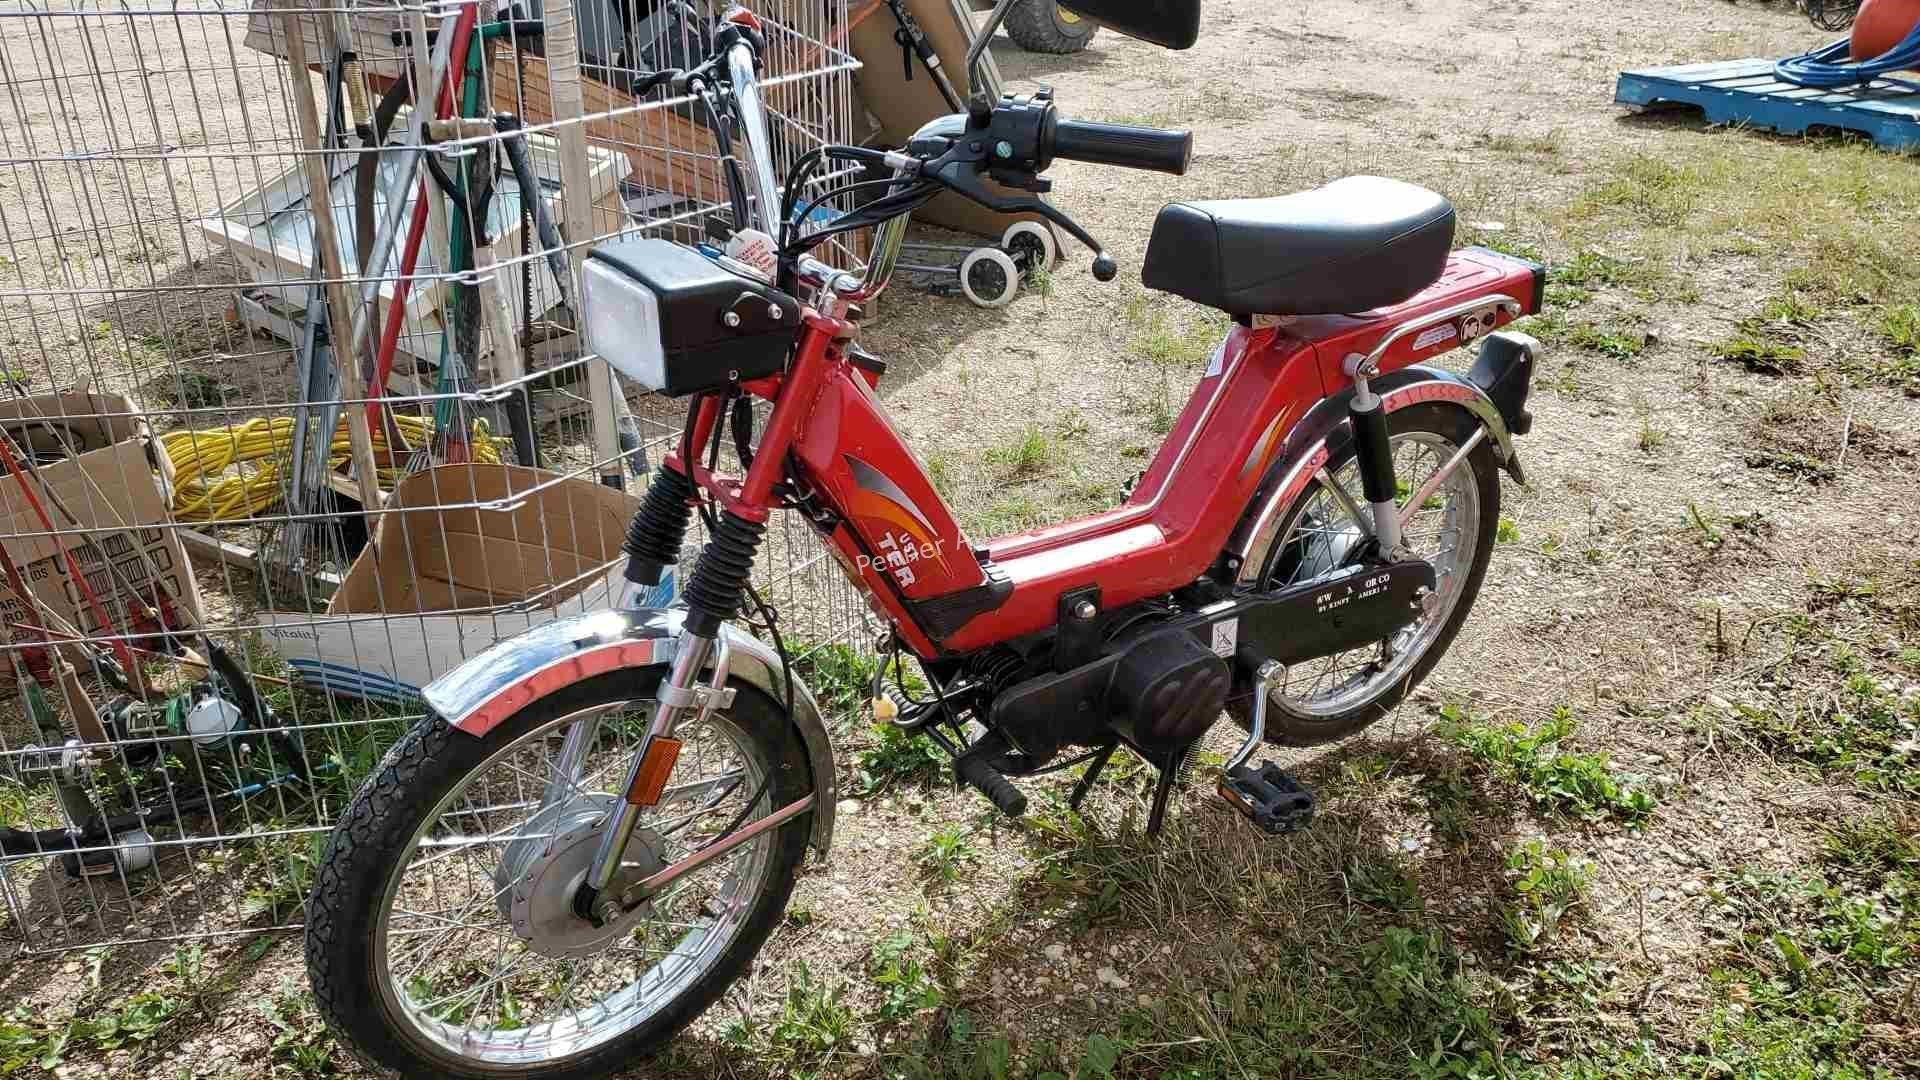 TFR 49cc Moped